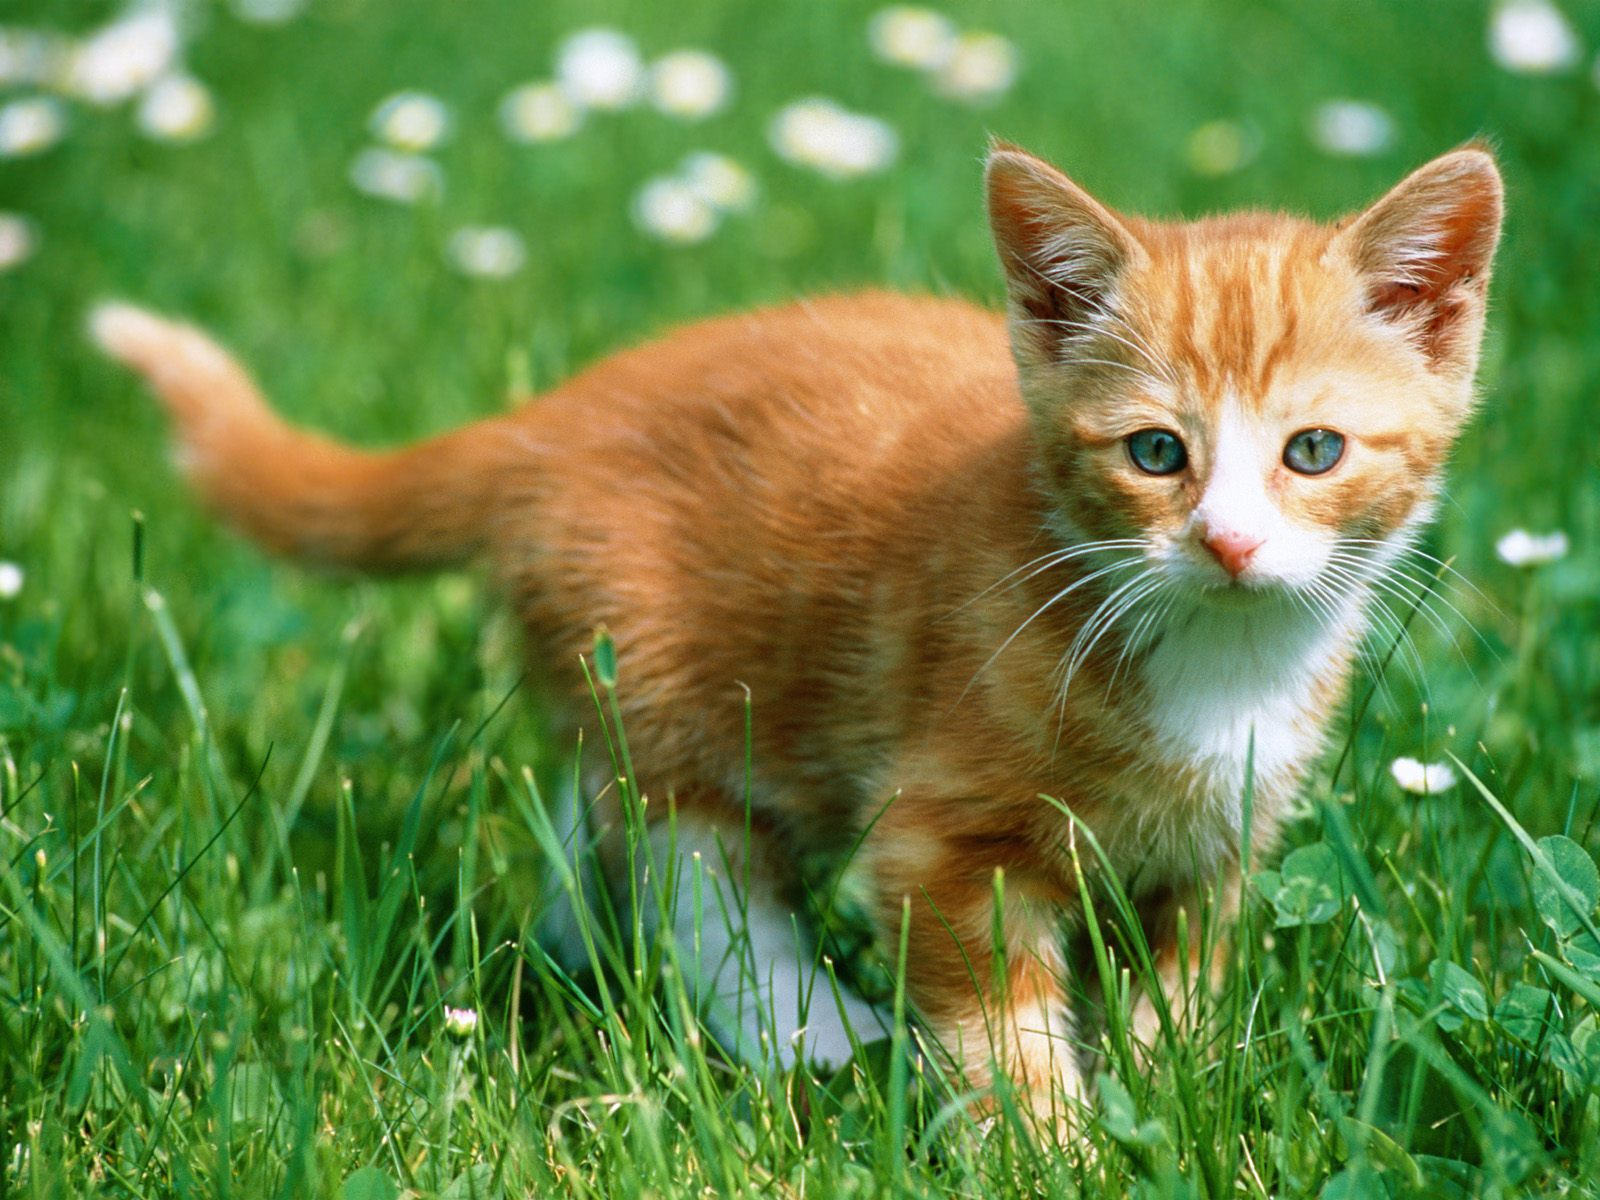 Amazing Wallpapers: Cats wallpapers, cat wallpaper